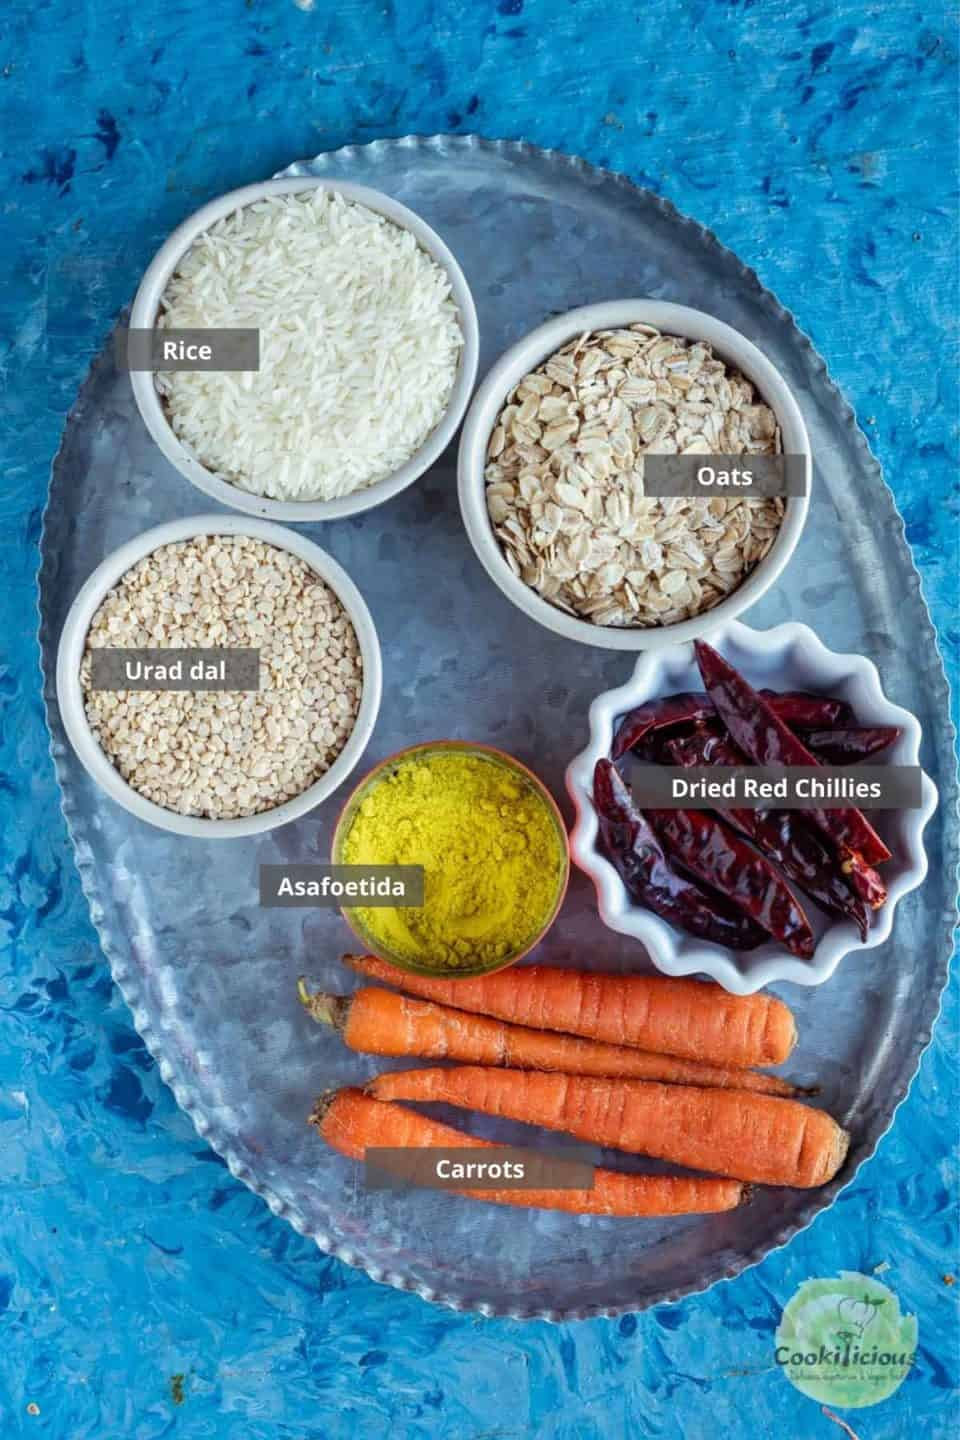 all the ingredients needed to make Oats Carrot Dosa placed in a tray with labels on them